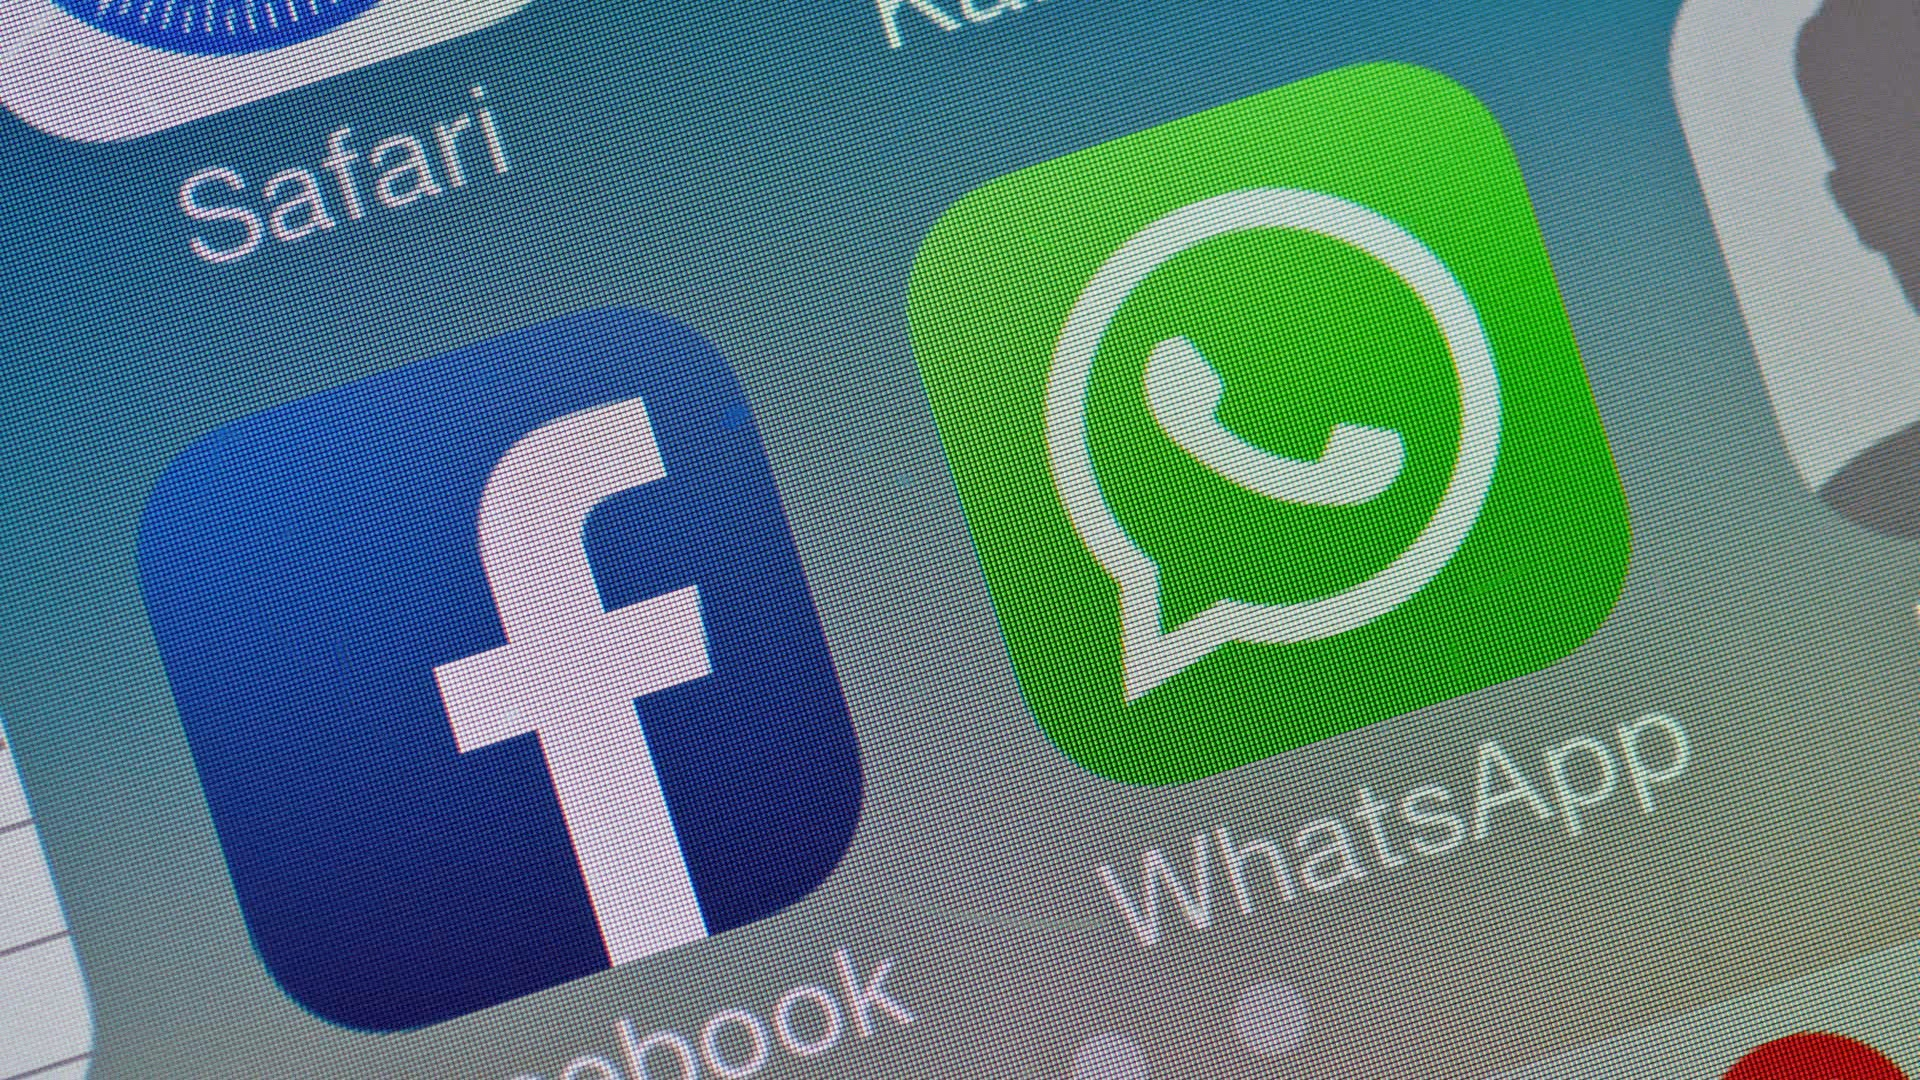 WhatsApp founder plans to leave after broad clashes with parent Facebook